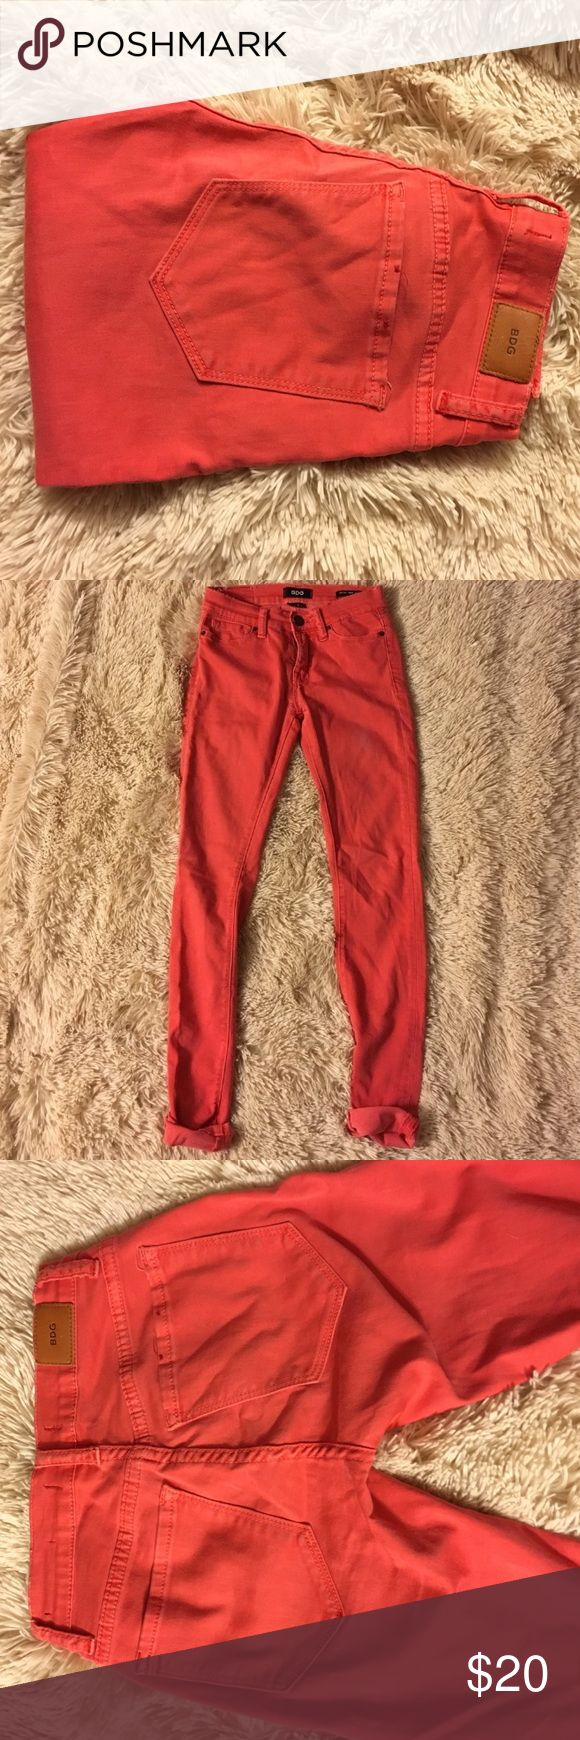 BDG red skinny jeans BDG red skinny jeans. Mid-rise twig ankle. These are in great condition. Size 24 x 29 length. These are. Red fade color. Urban Outfitters Pants Skinny